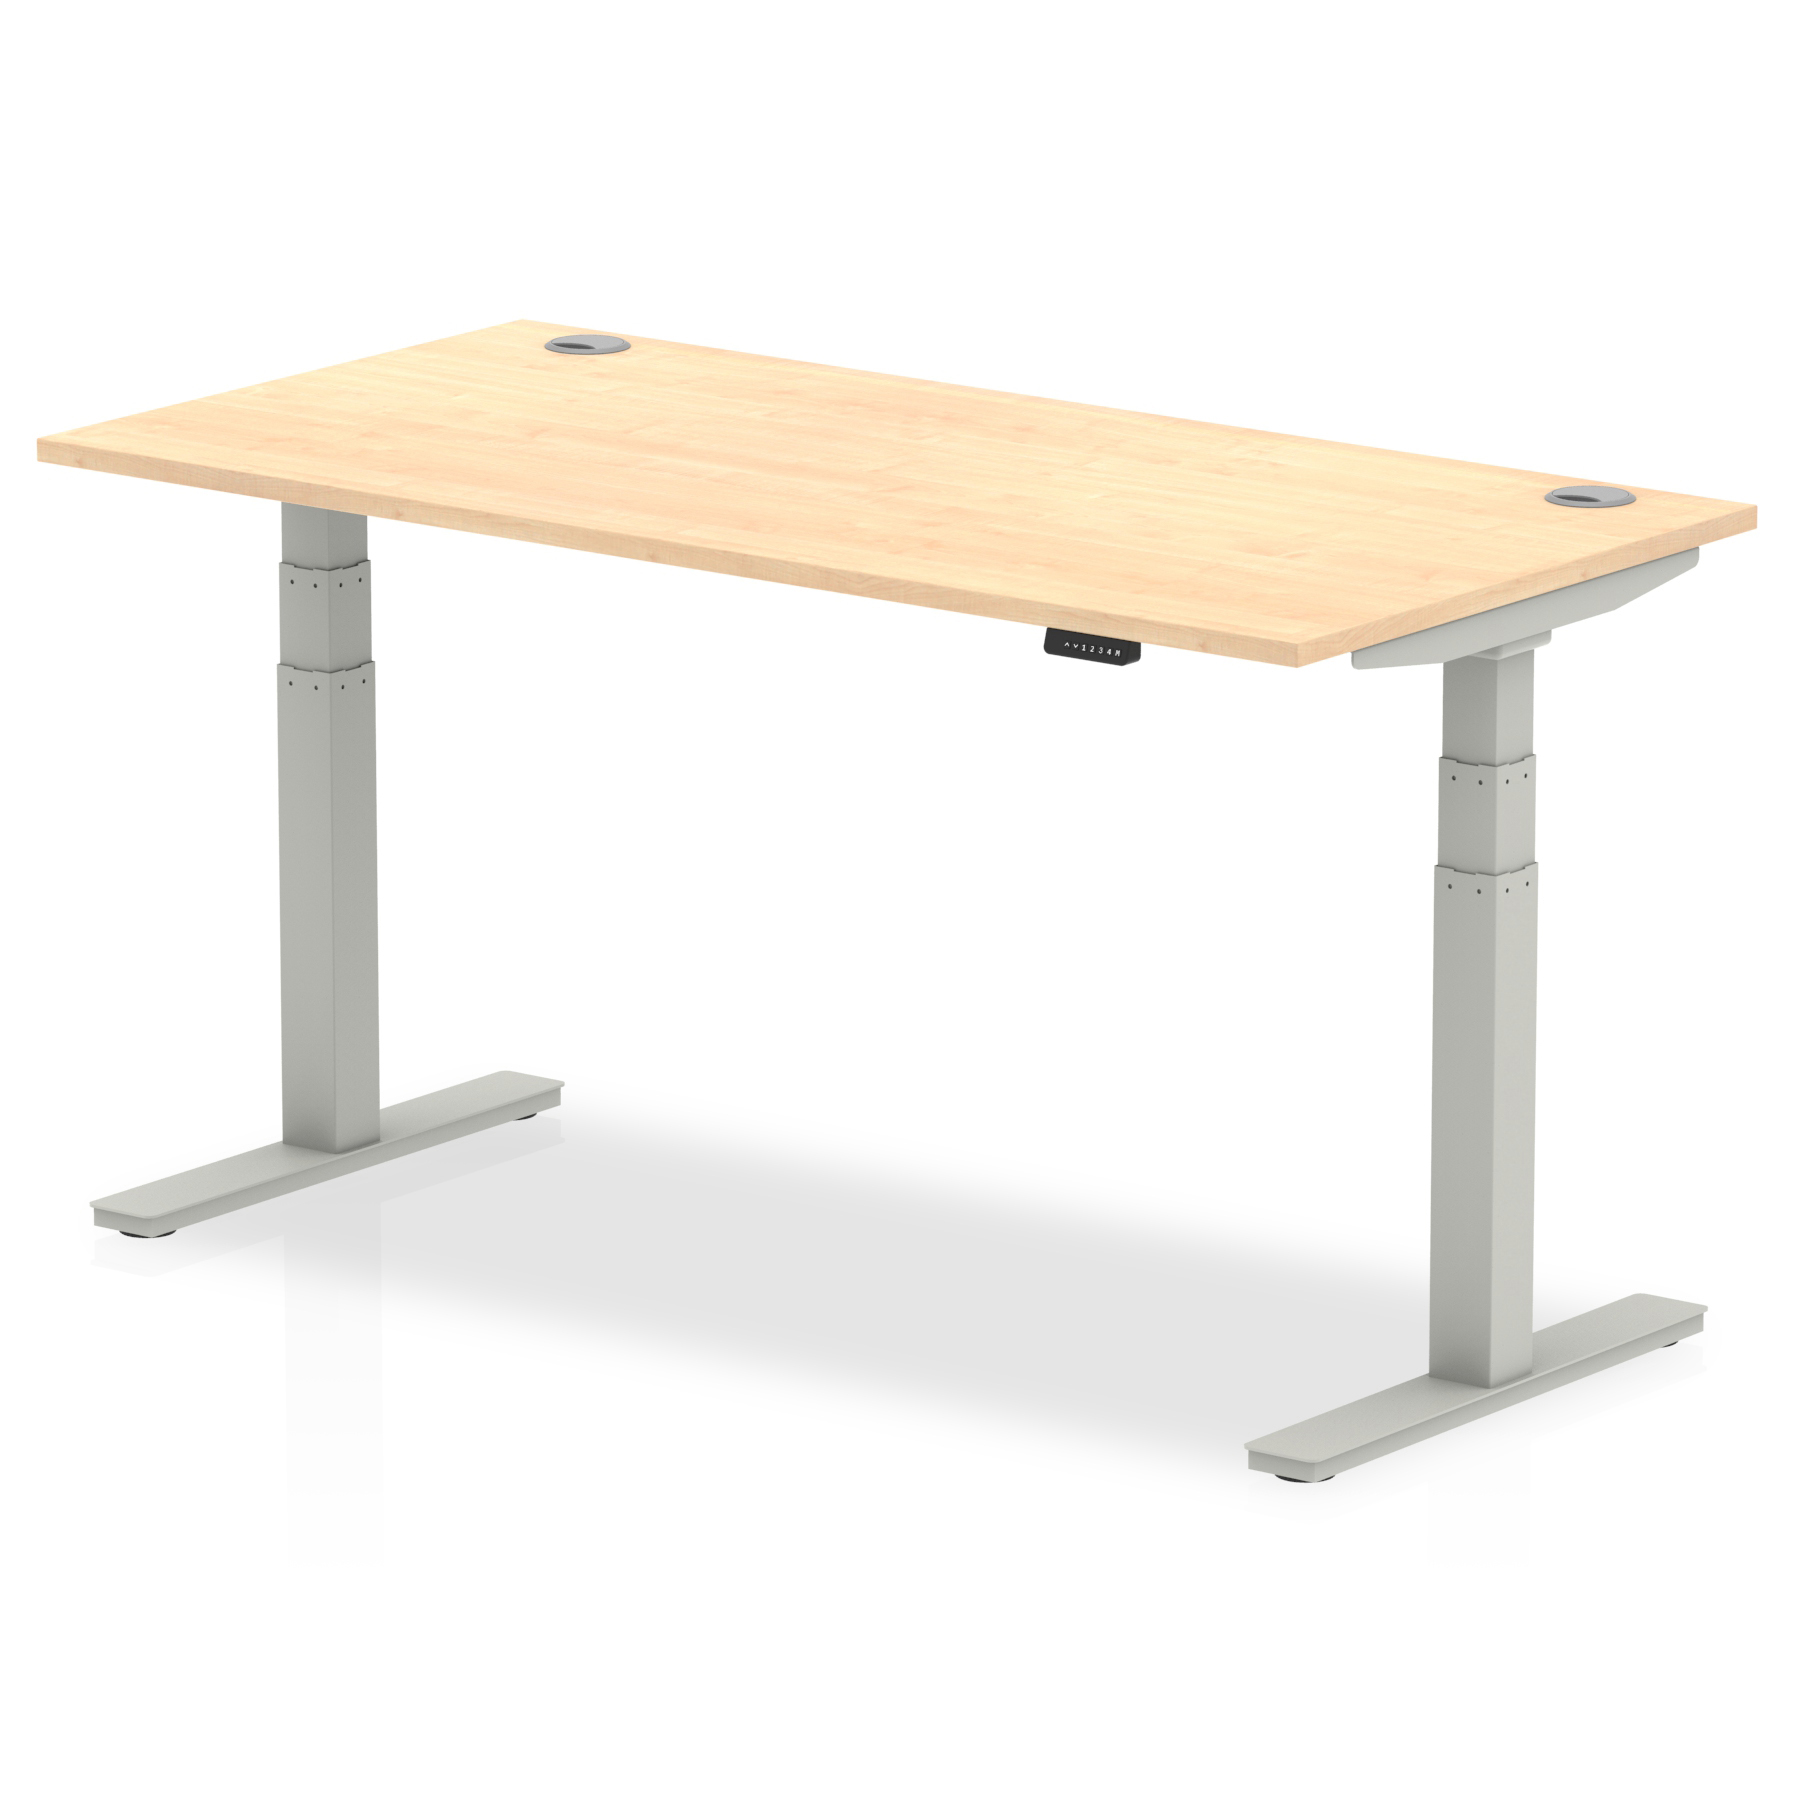 Trexus Sit Stand Desk With Cable Ports Silver Legs 1600x800mm Maple Ref HA01095